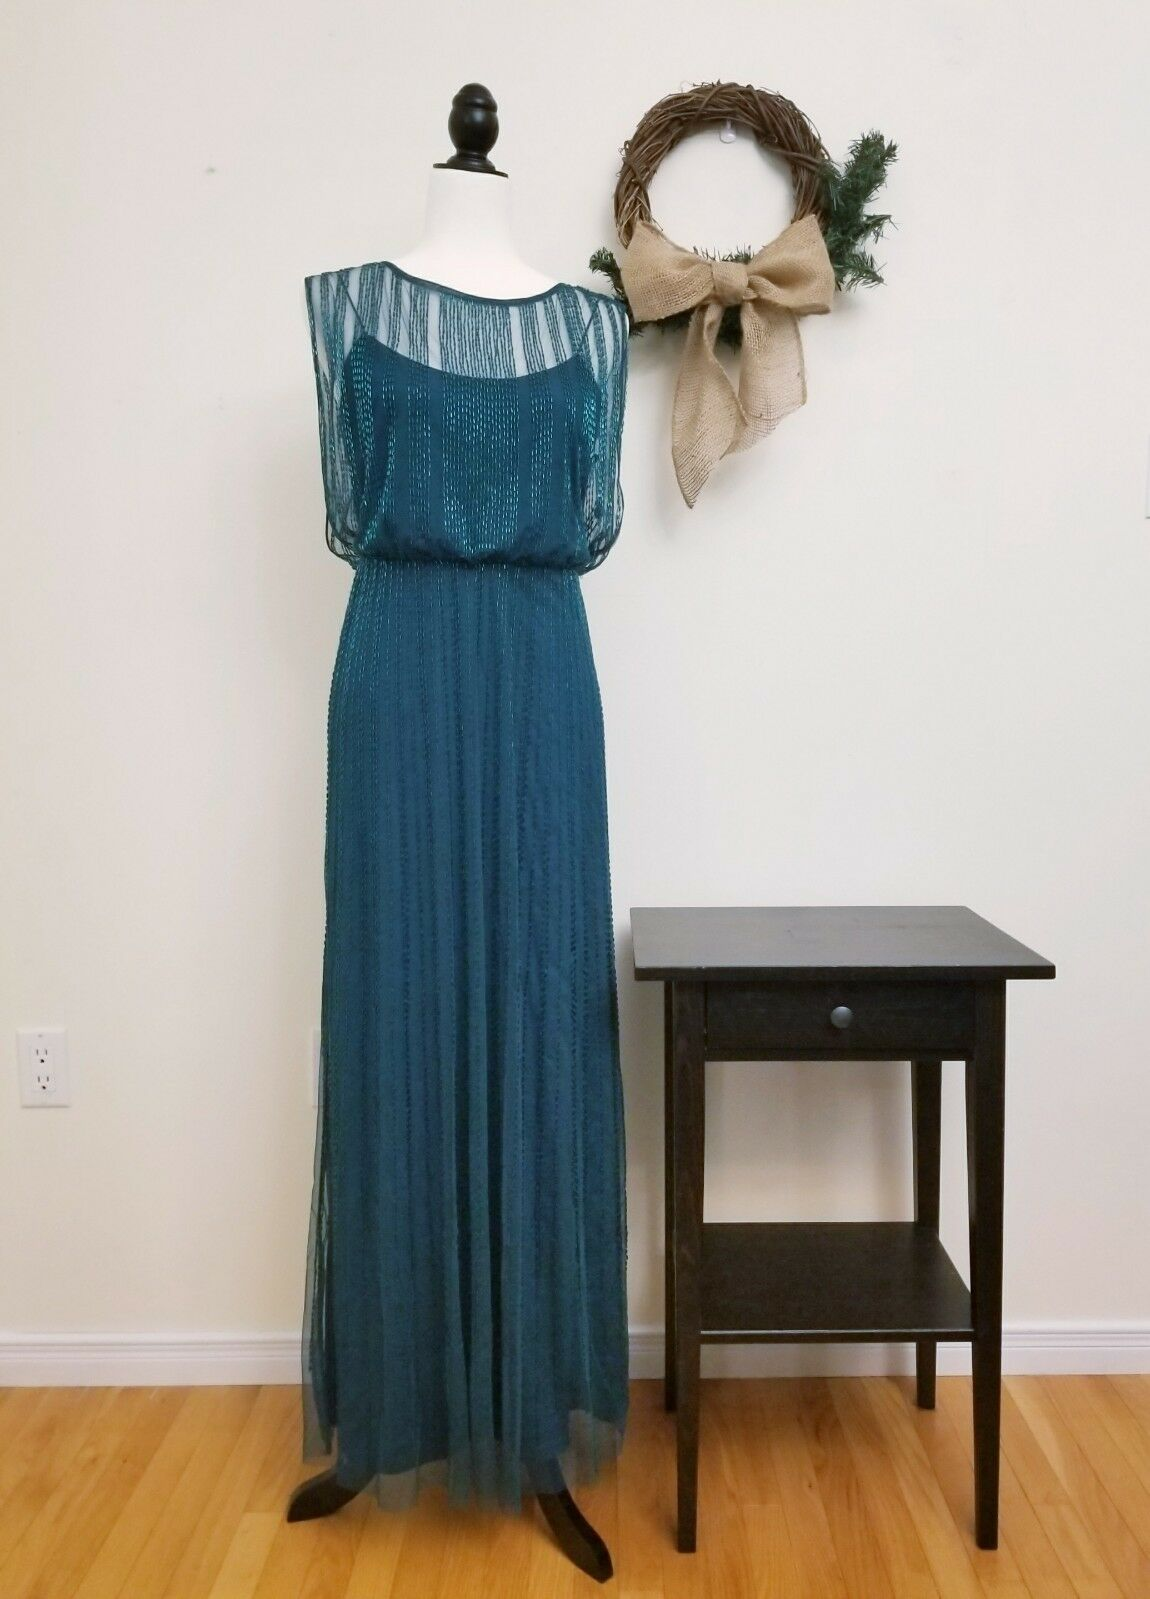 Adrianna Papell Beaded Boat Neck Cap Sleeve Blouson Gown, Emerald Green, 6P